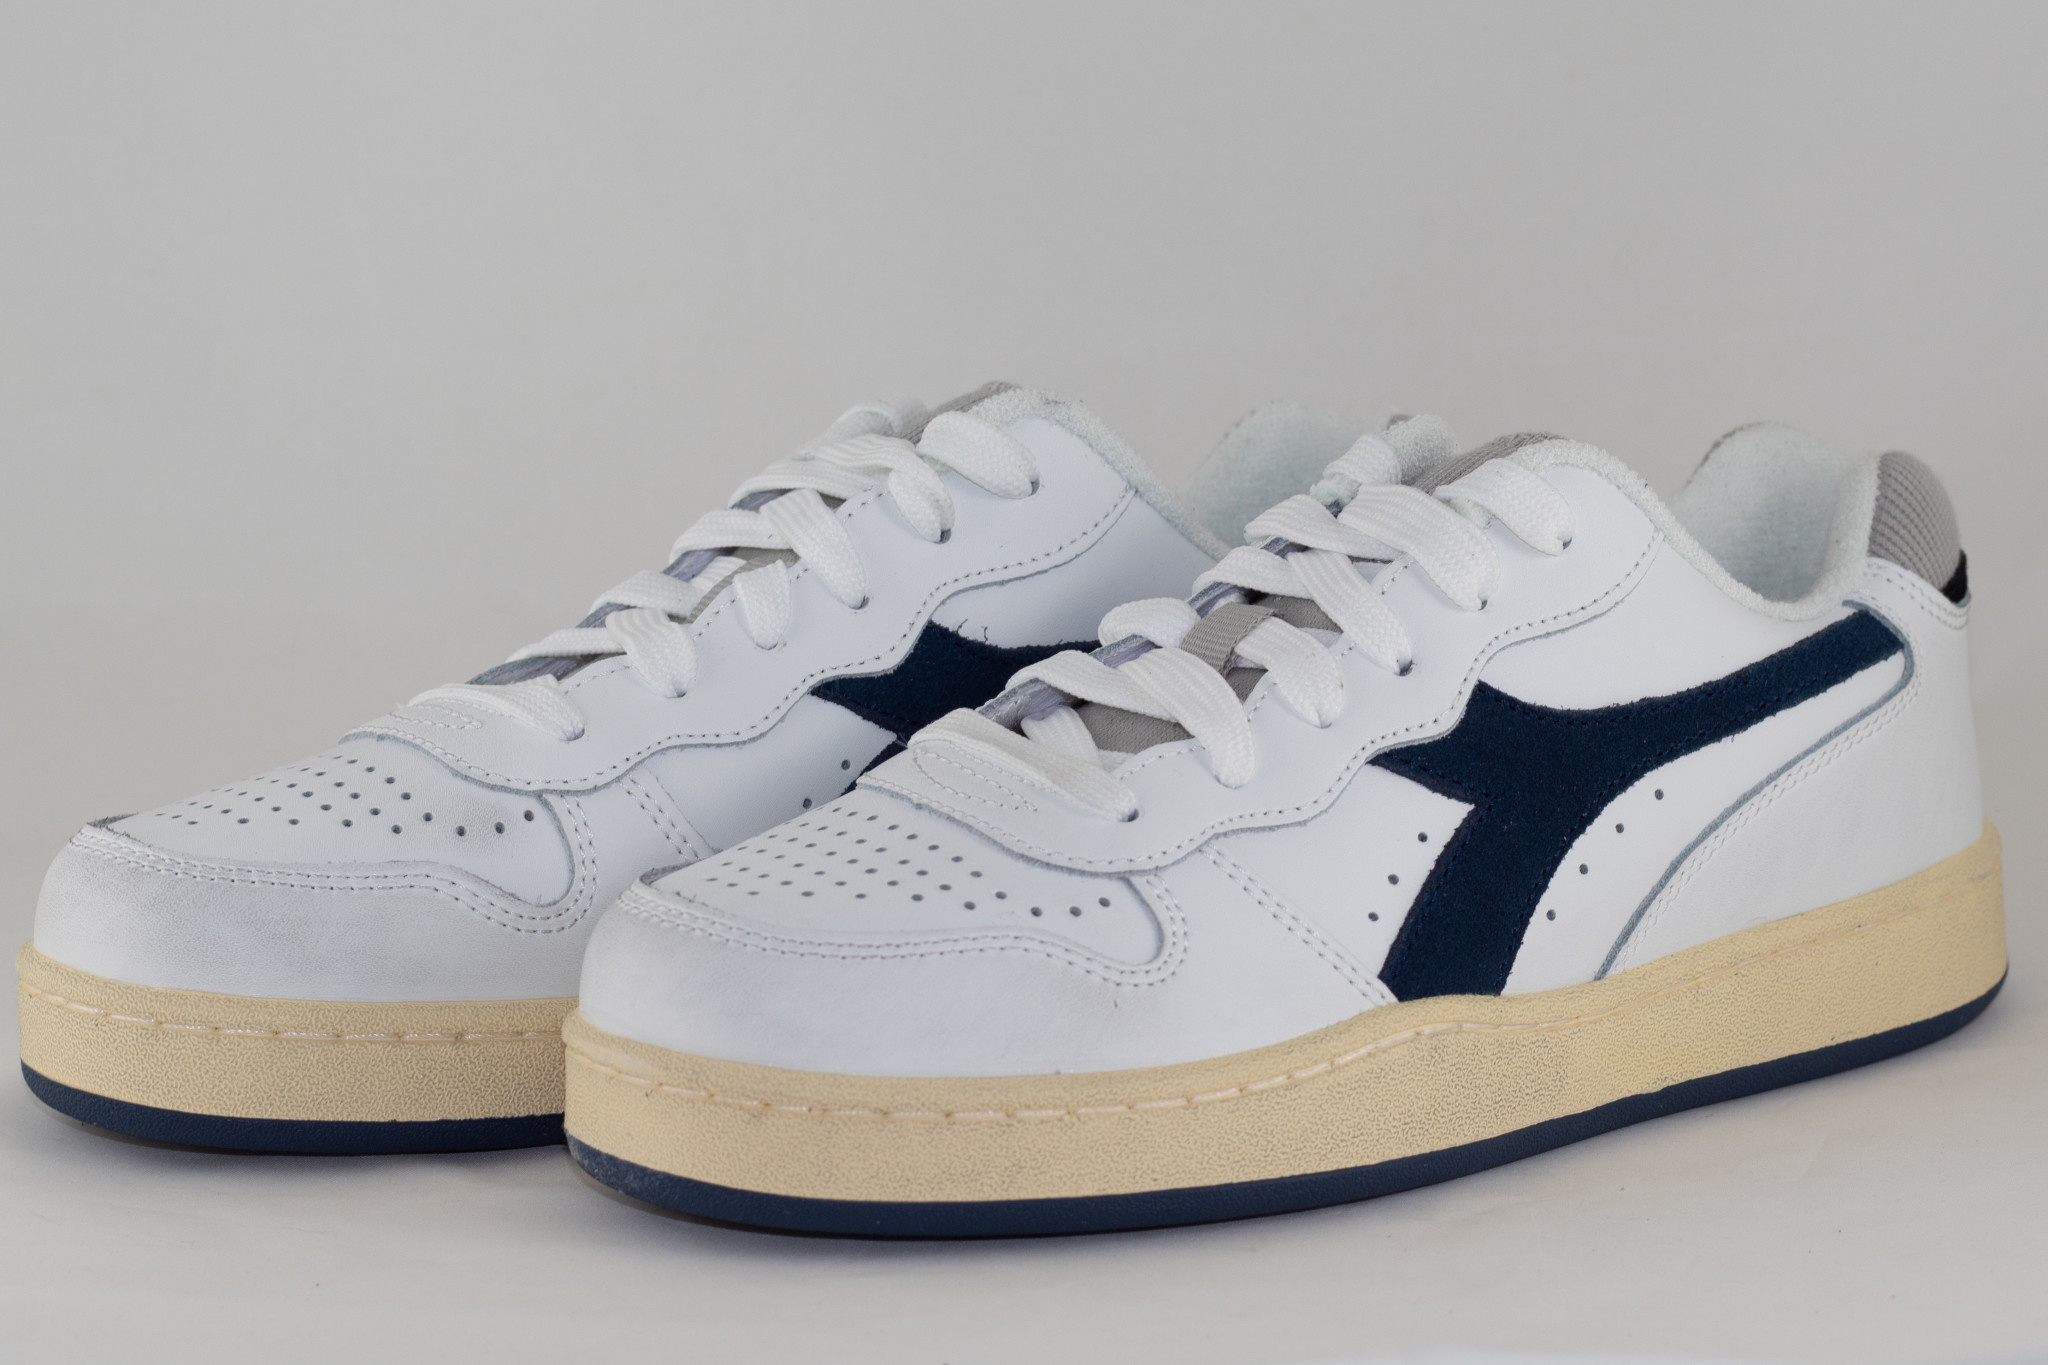 DIADORA MI BASKET LOW USED White/ Blue Dark Denim